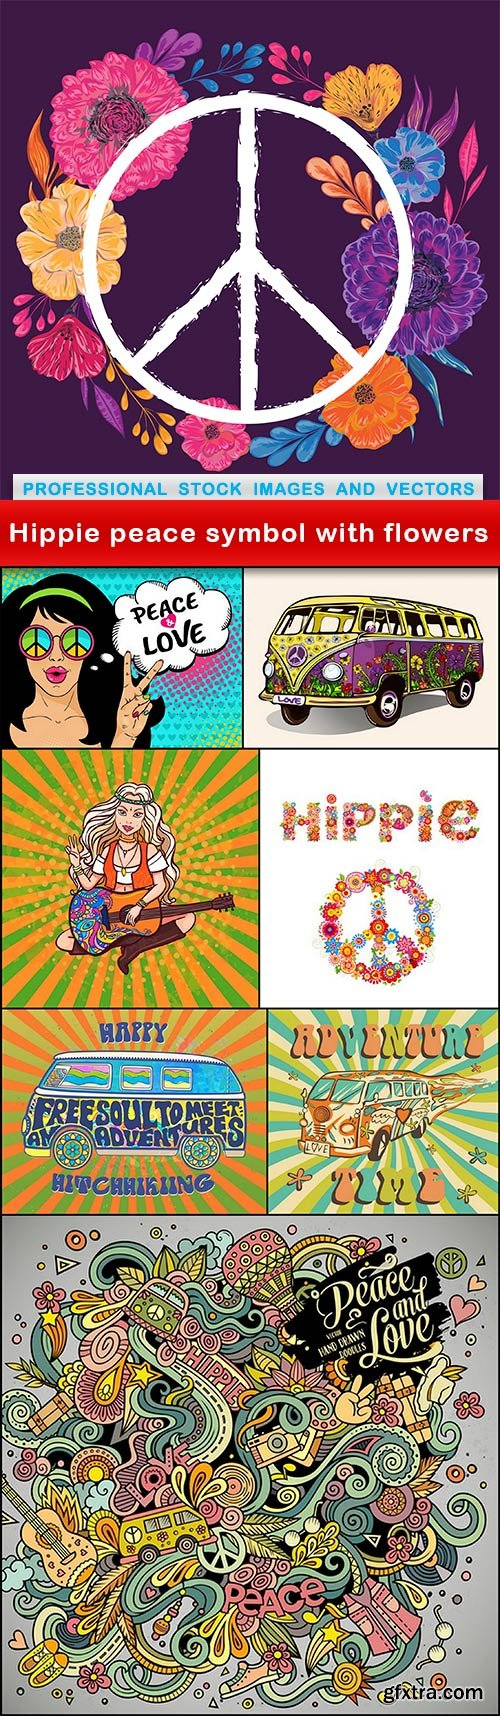 Hippie peace symbol with flowers - 8 EPS